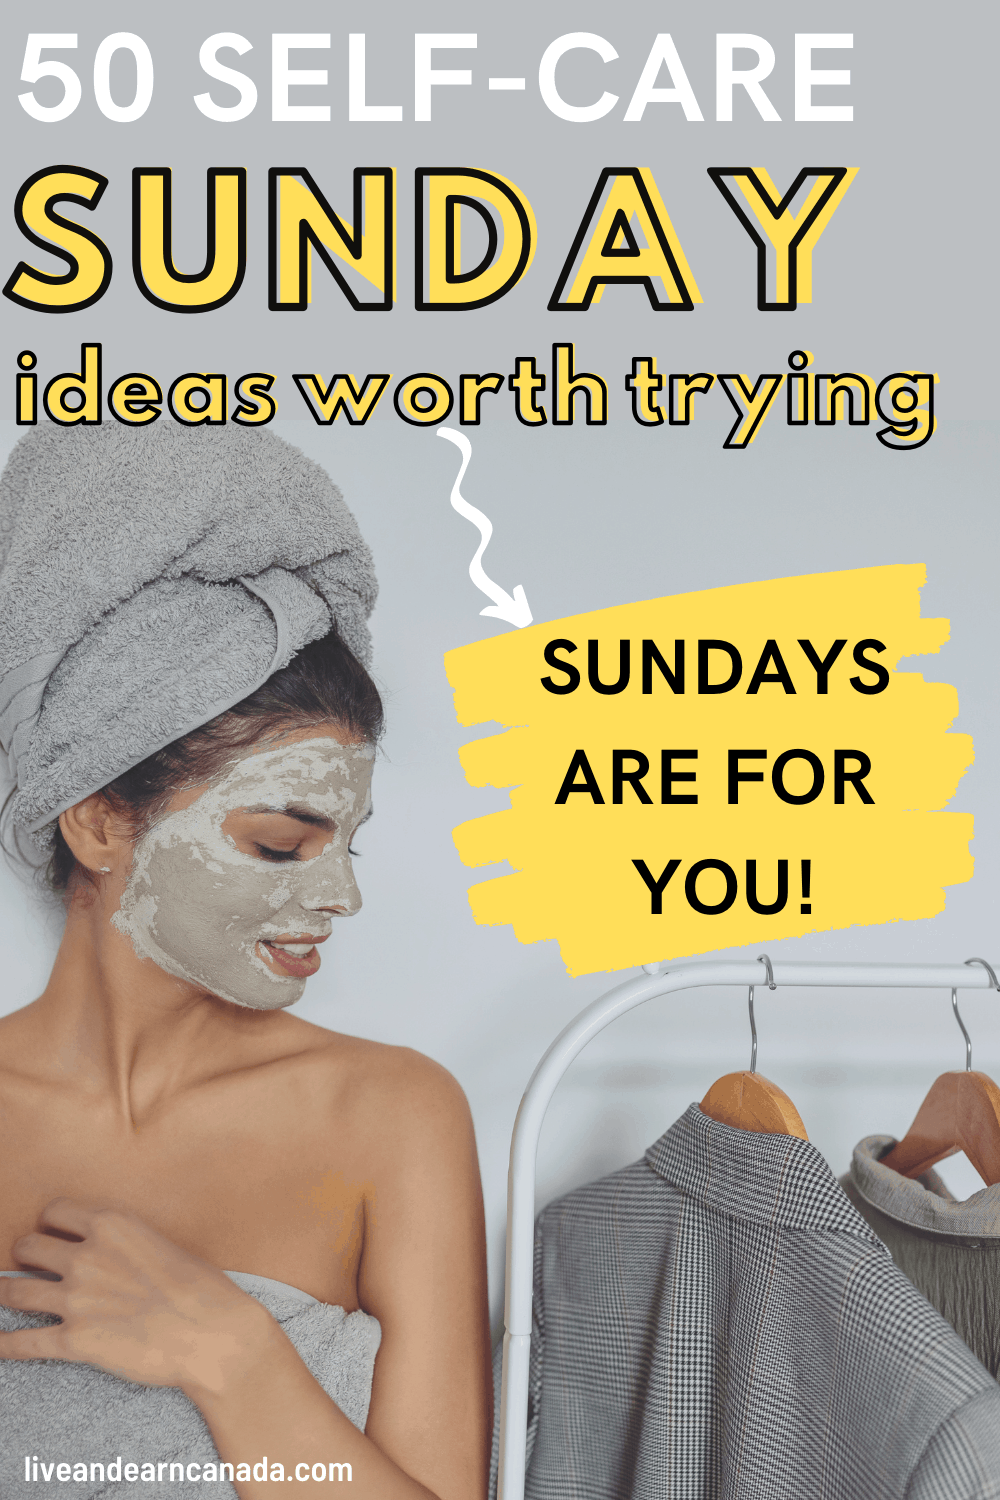 50 Self care ideas to makeup the best possible SELF CARE ROUTINE | Live and earn in Canada. Looking to have the best self-care sunday then this self-care sunday routine is absolutely made for you. Super easy and practical! The perfect self-care sunday ideas for calming down and kick starting your upcoming week! #selfcare #selfcareroutine #selfcaresunday